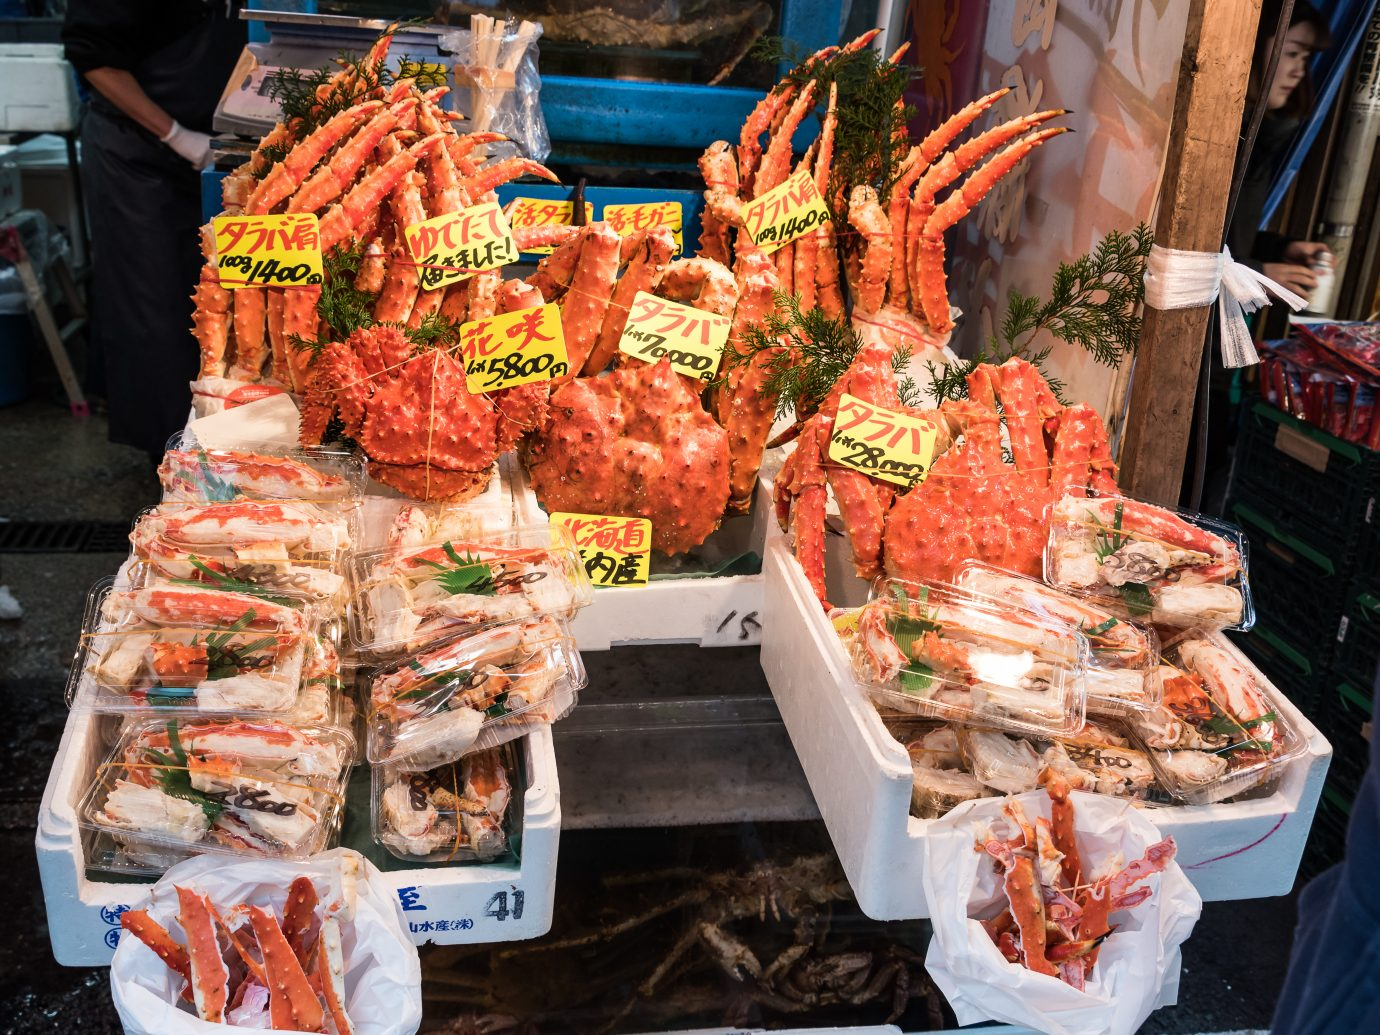 Crabs for sale at the Tsukiji fish market.